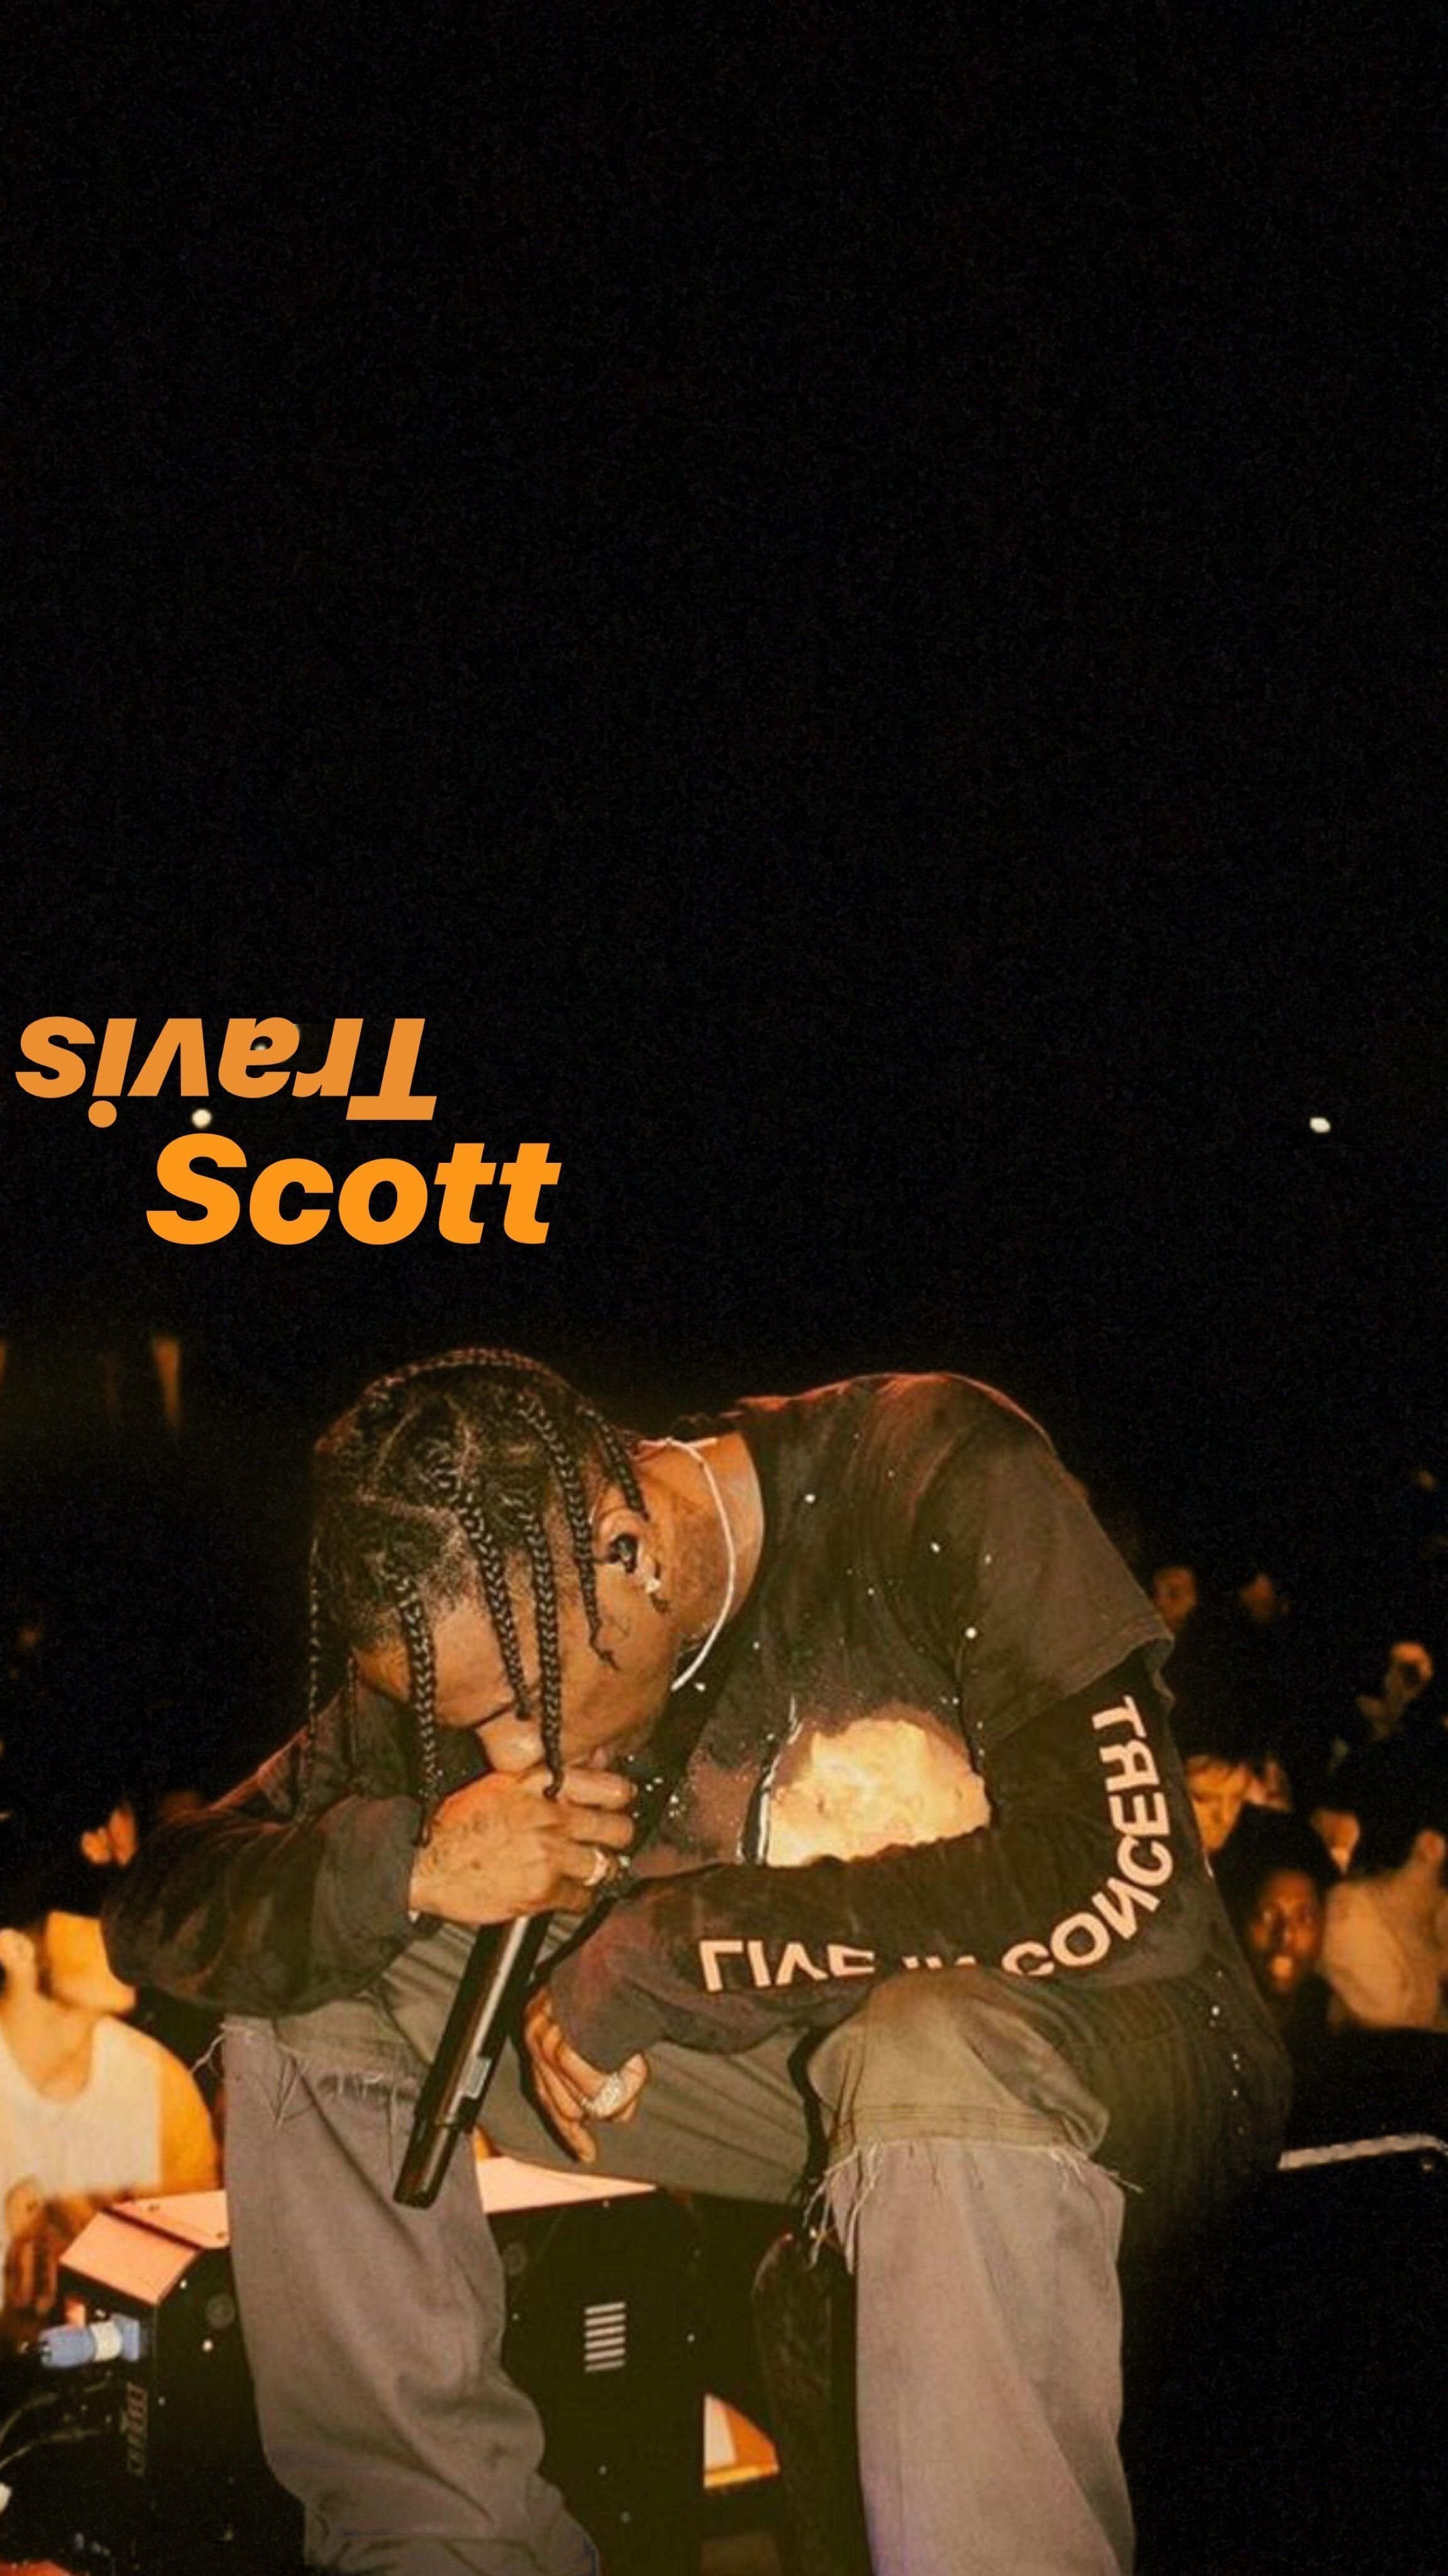 Astroworld Wallpapers Top Free Astroworld Backgrounds Wallpaperaccess In 2020 Travis Scott Wallpapers Travis Scott Iphone Wallpaper Travis Scott